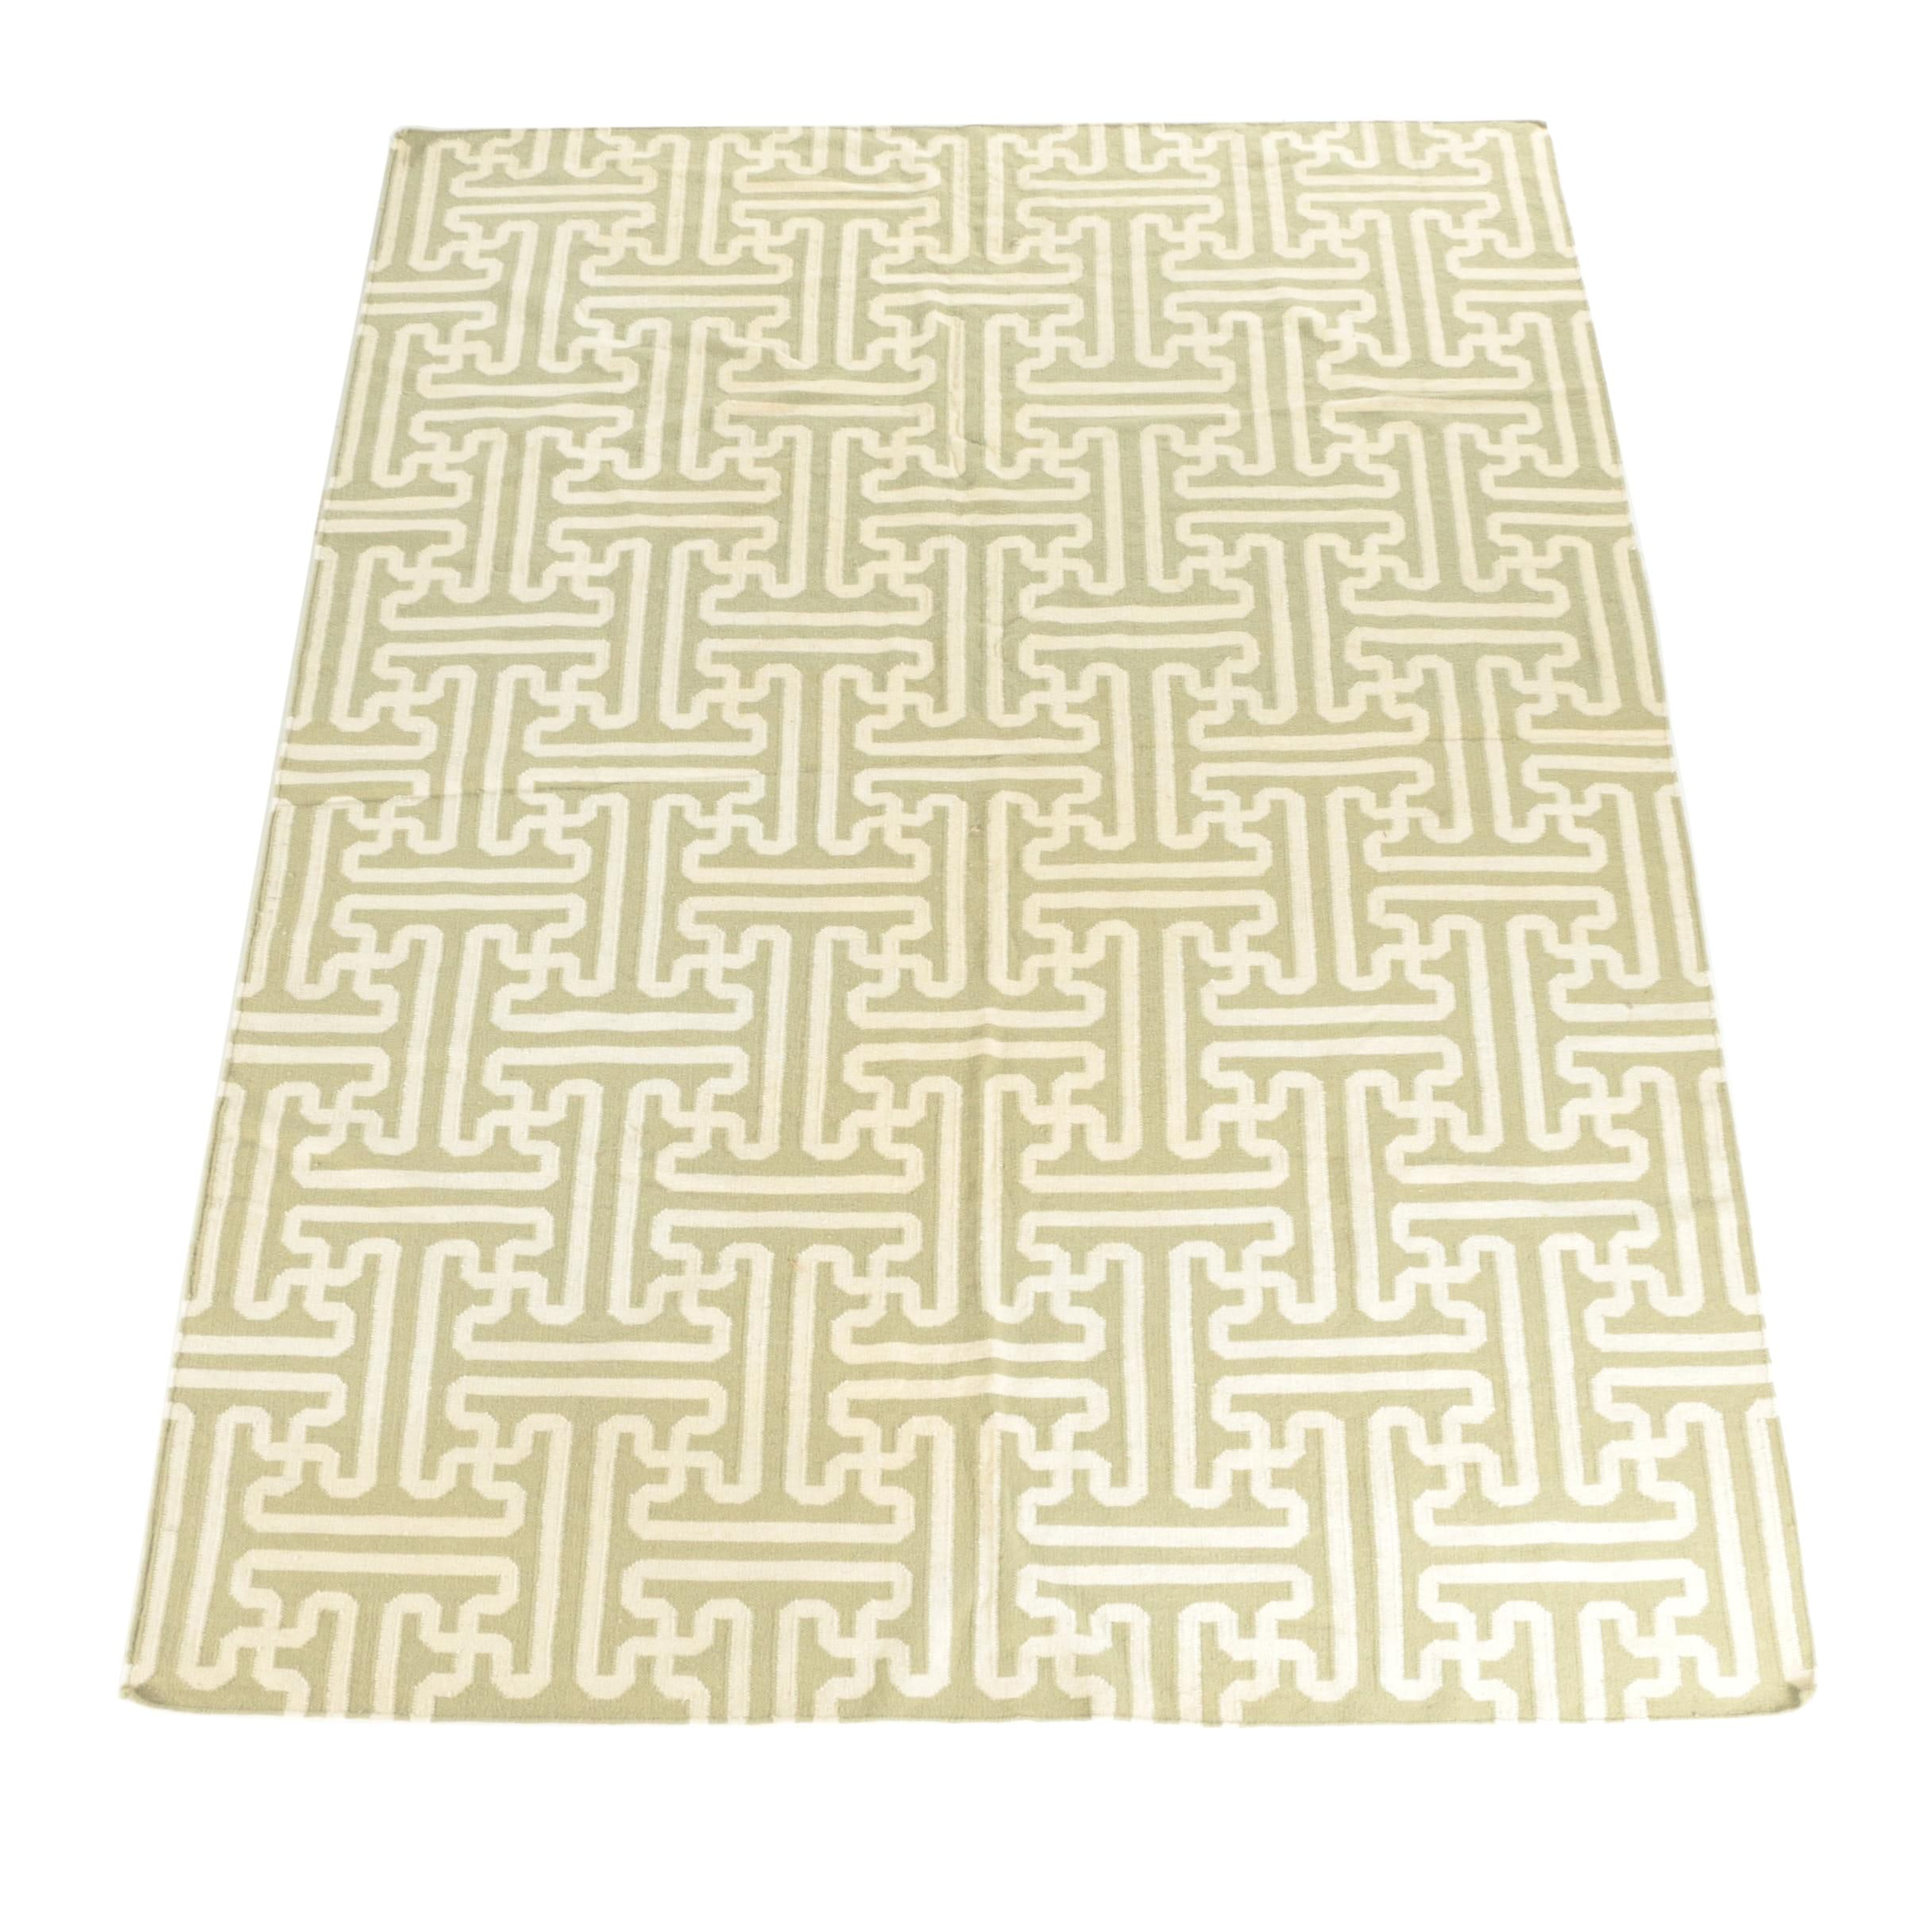 Handwoven Flat Weave Sage and Cream Lattice Area Rug